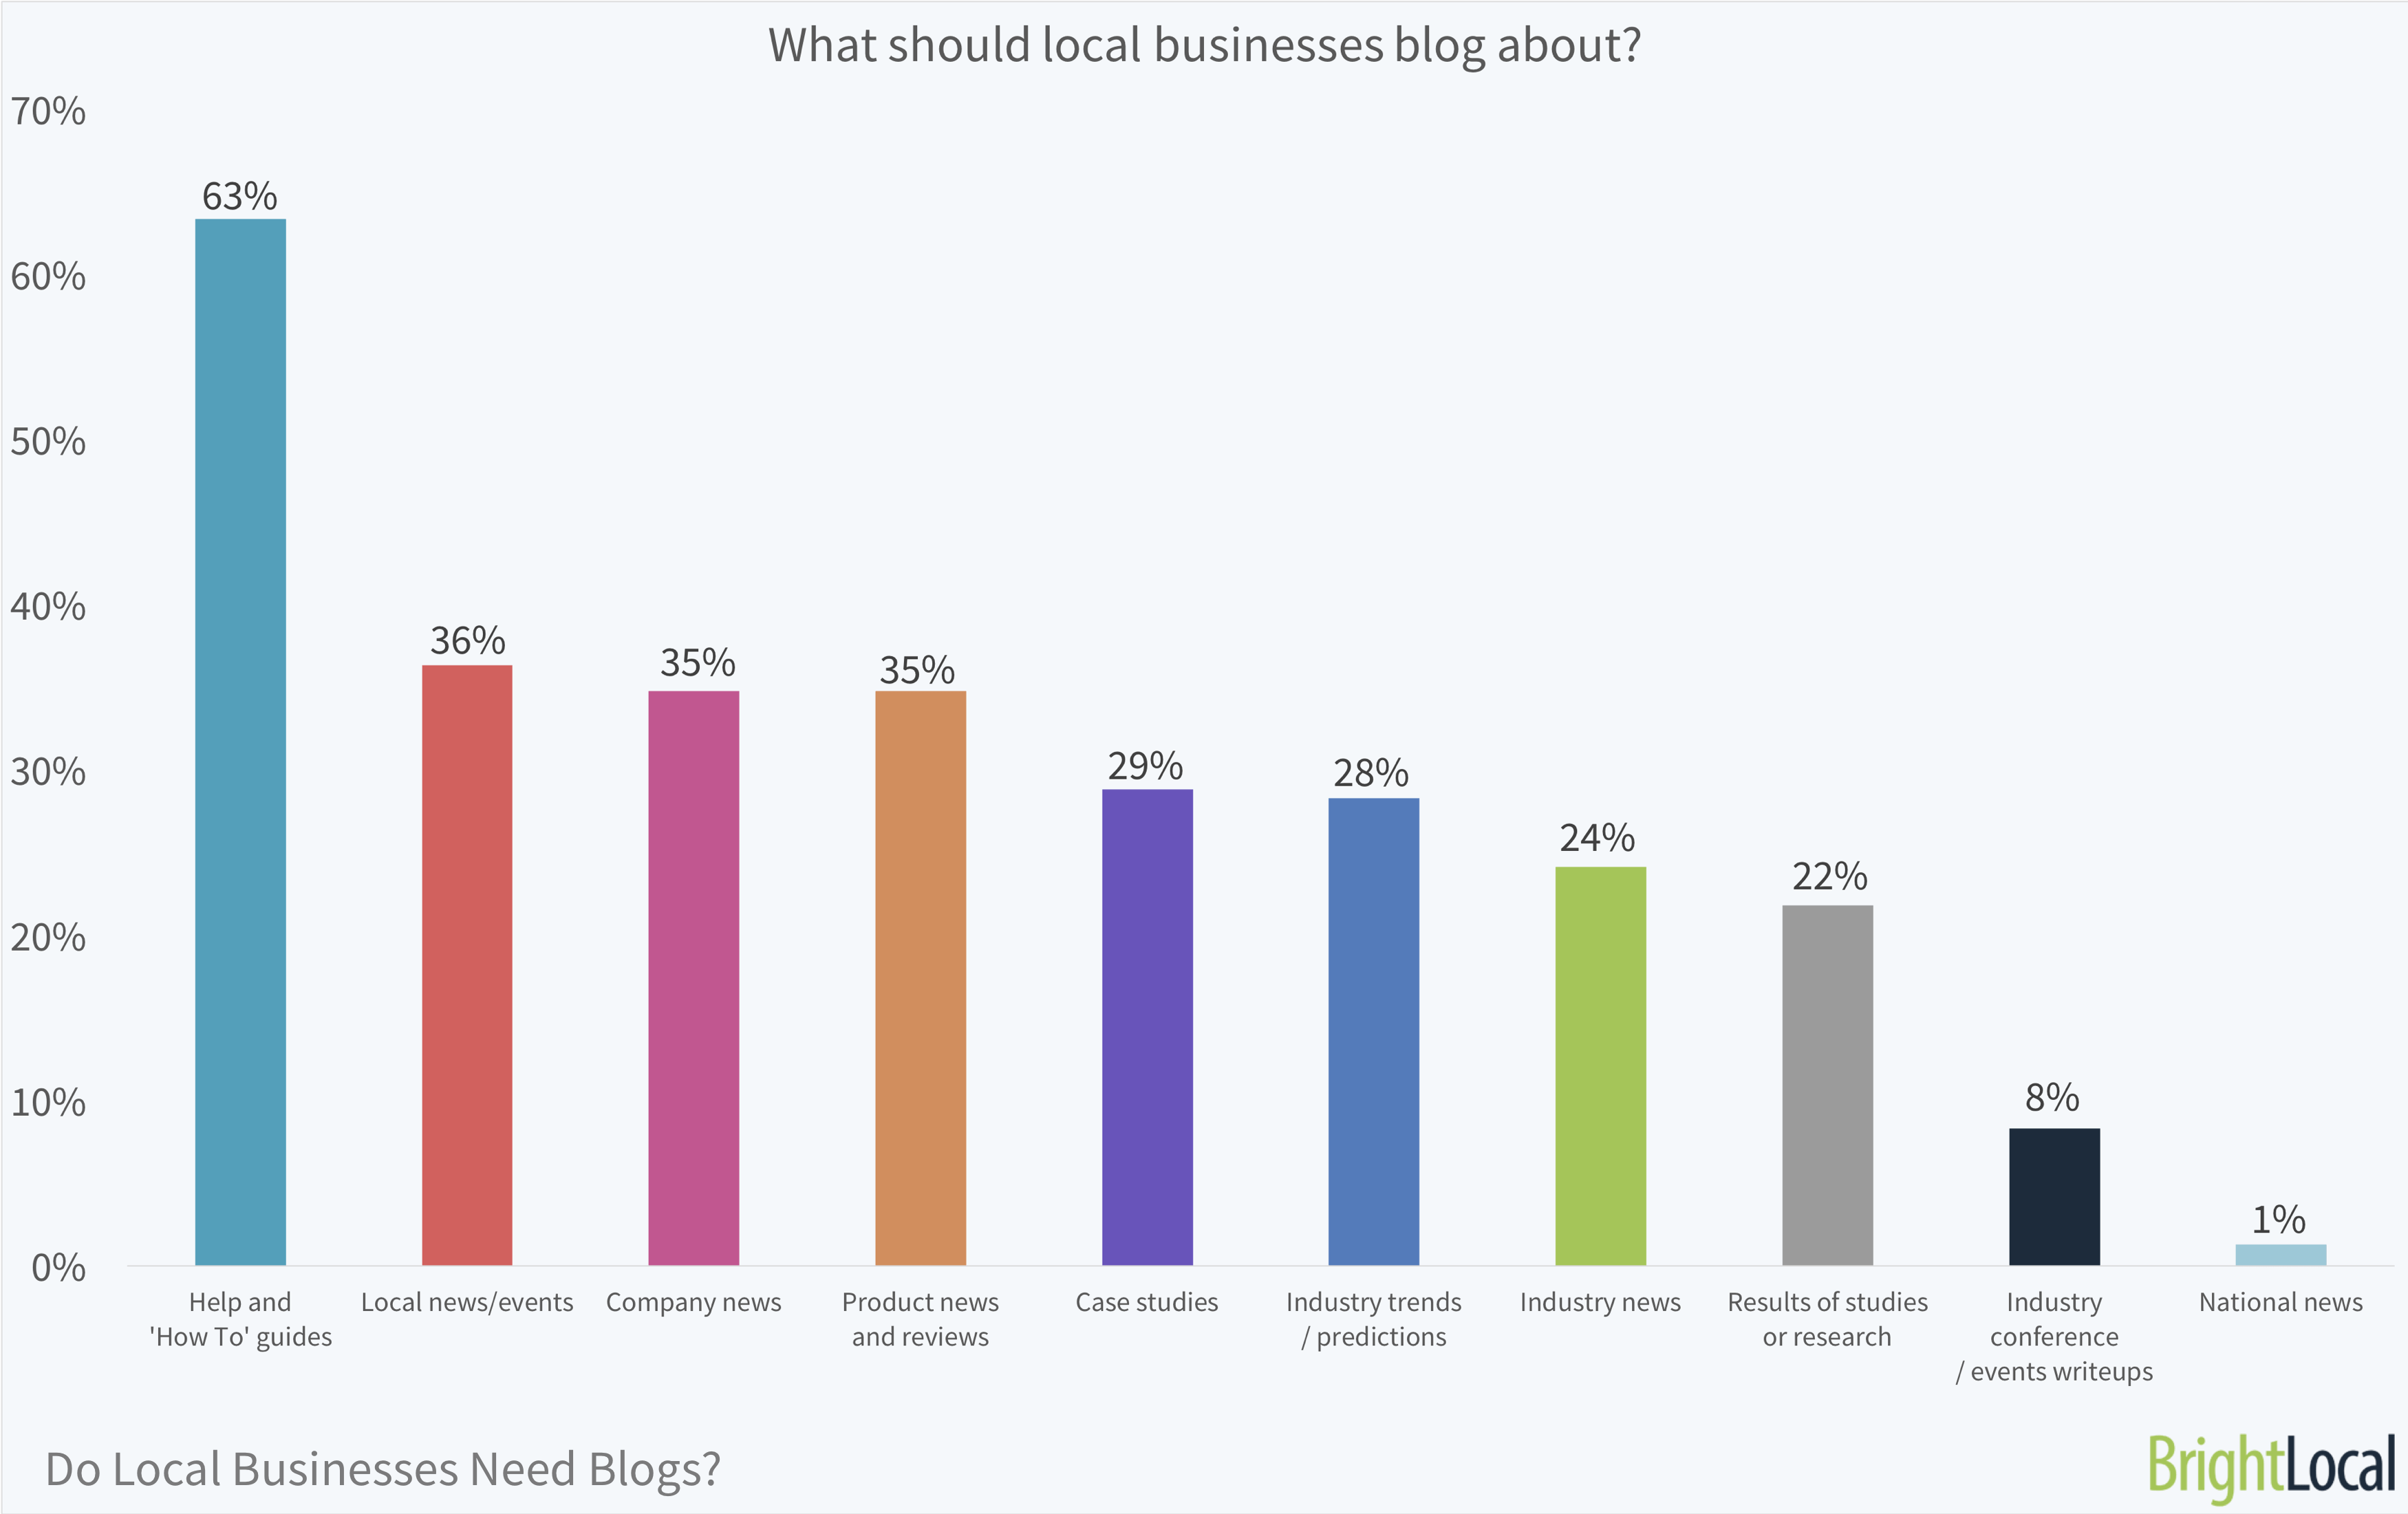 What should local businesses blog about? | BrightLocal Local Business Blog Survey